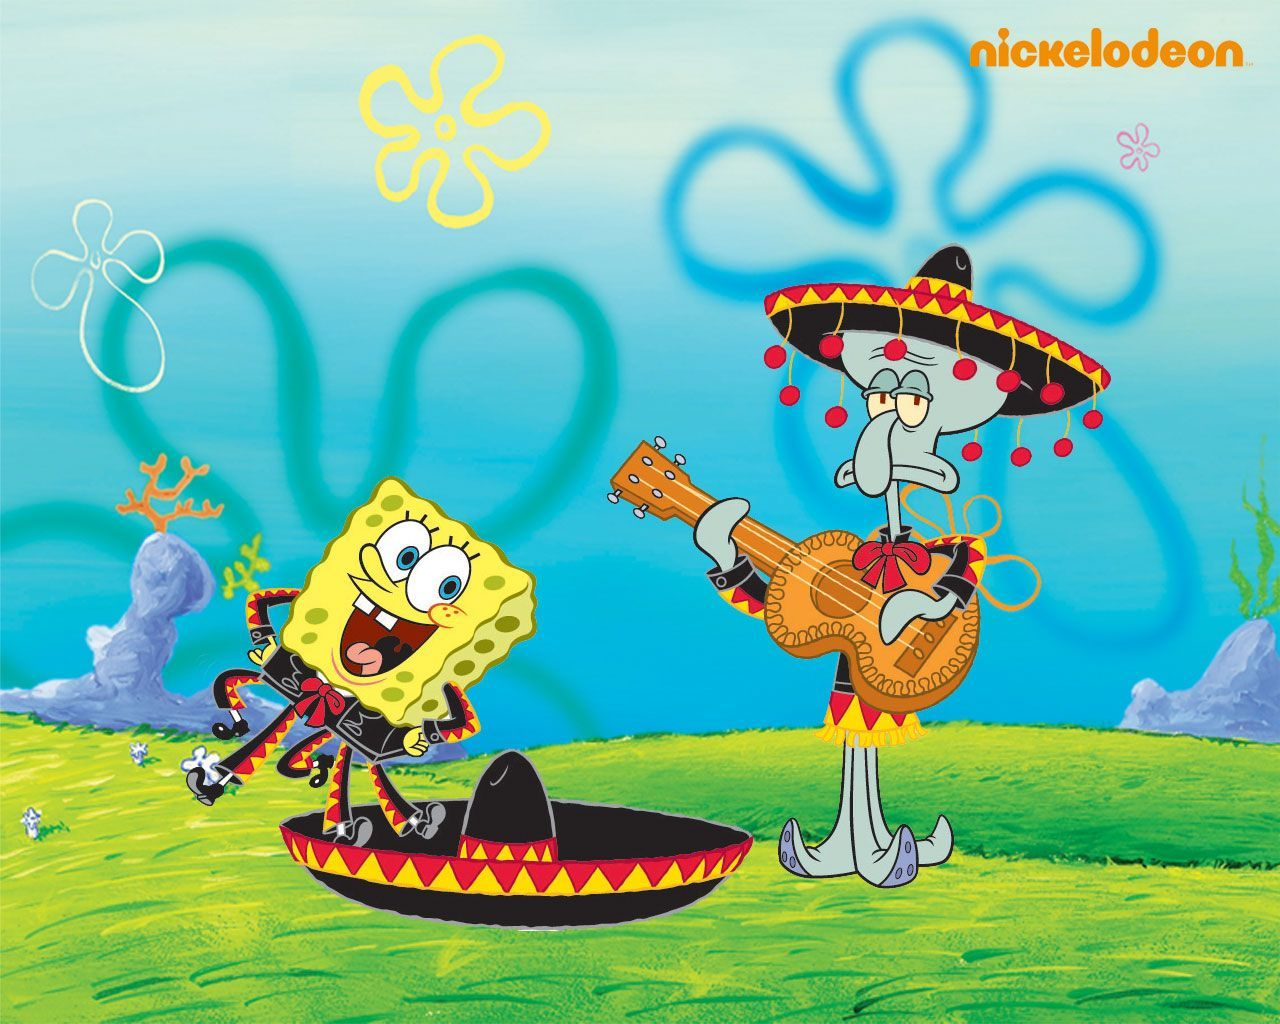 Spongebob & Squidward - spongebob-squarepants Wallpaper | BG ...